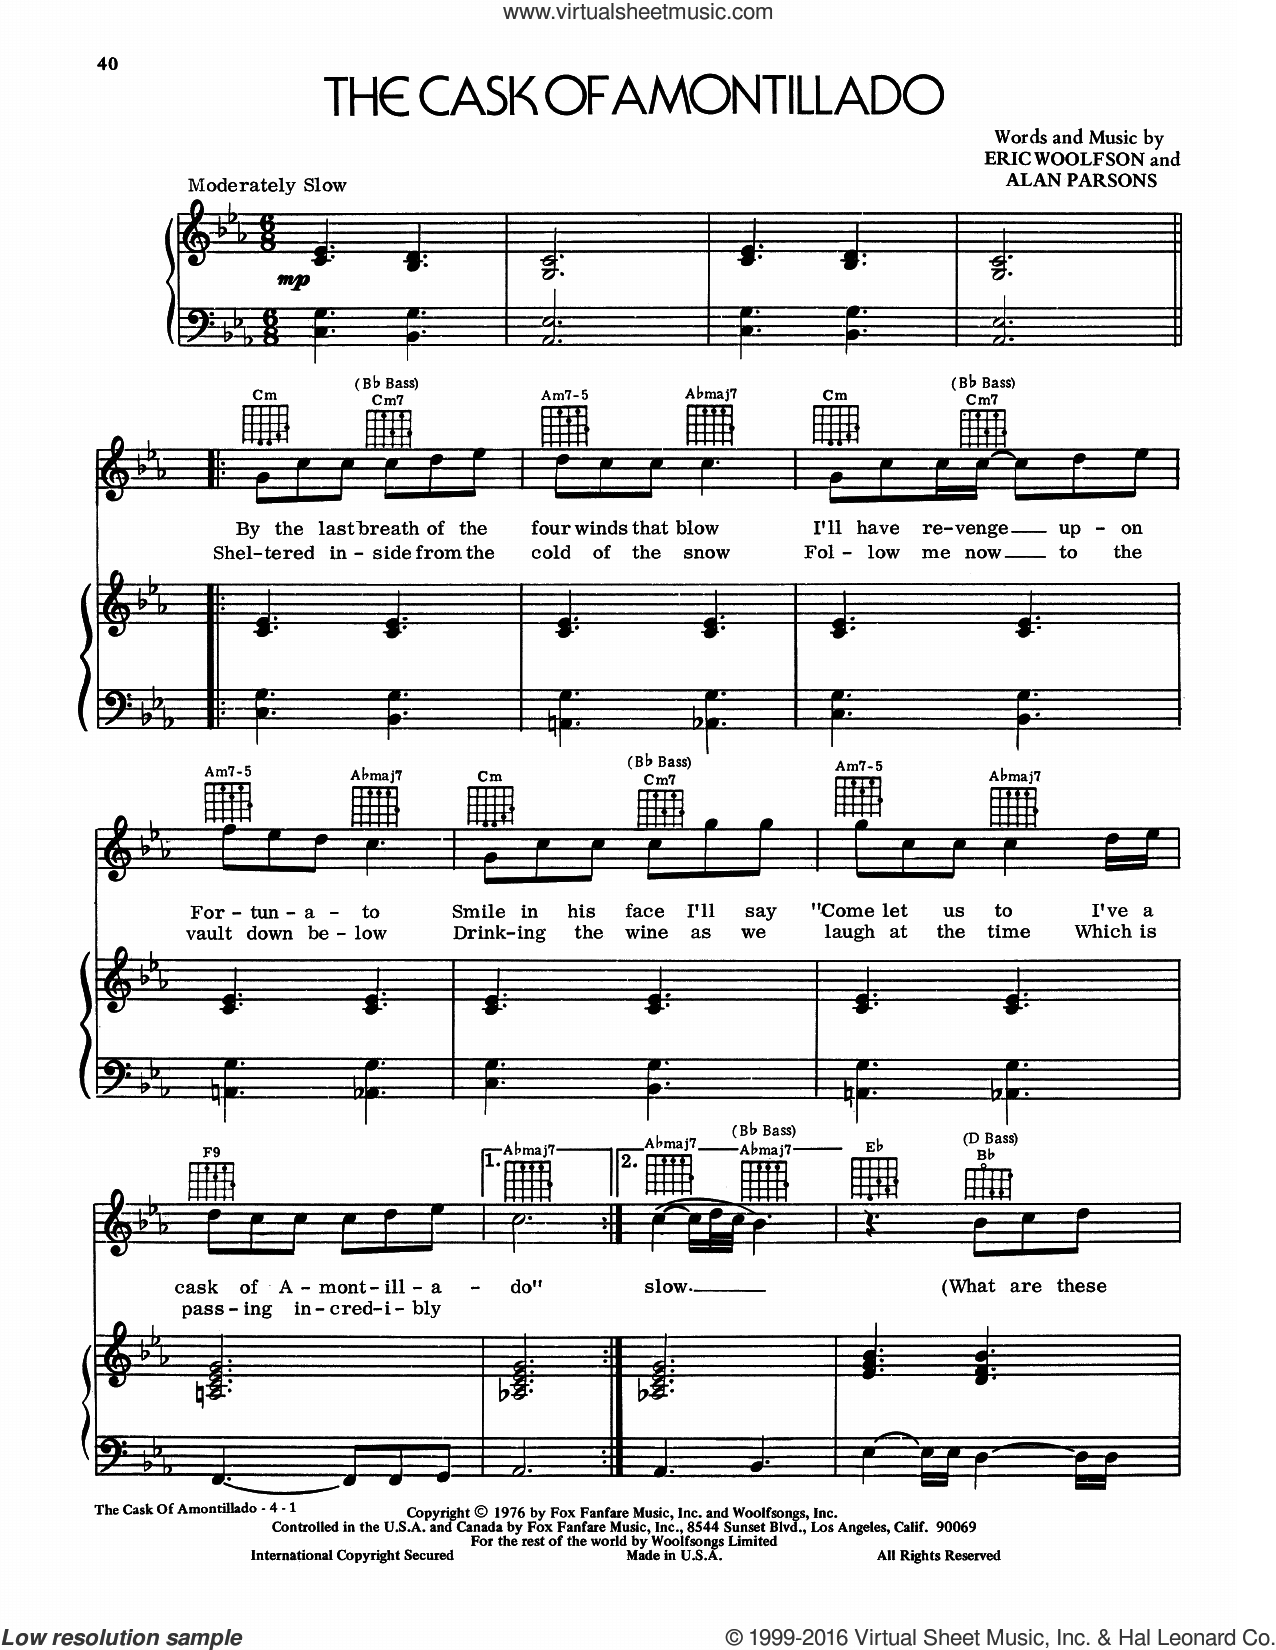 The Cask Of Amontillado sheet music for voice, piano or guitar by Alan Parsons Project, Alan Parsons and Eric Woolfson, intermediate skill level